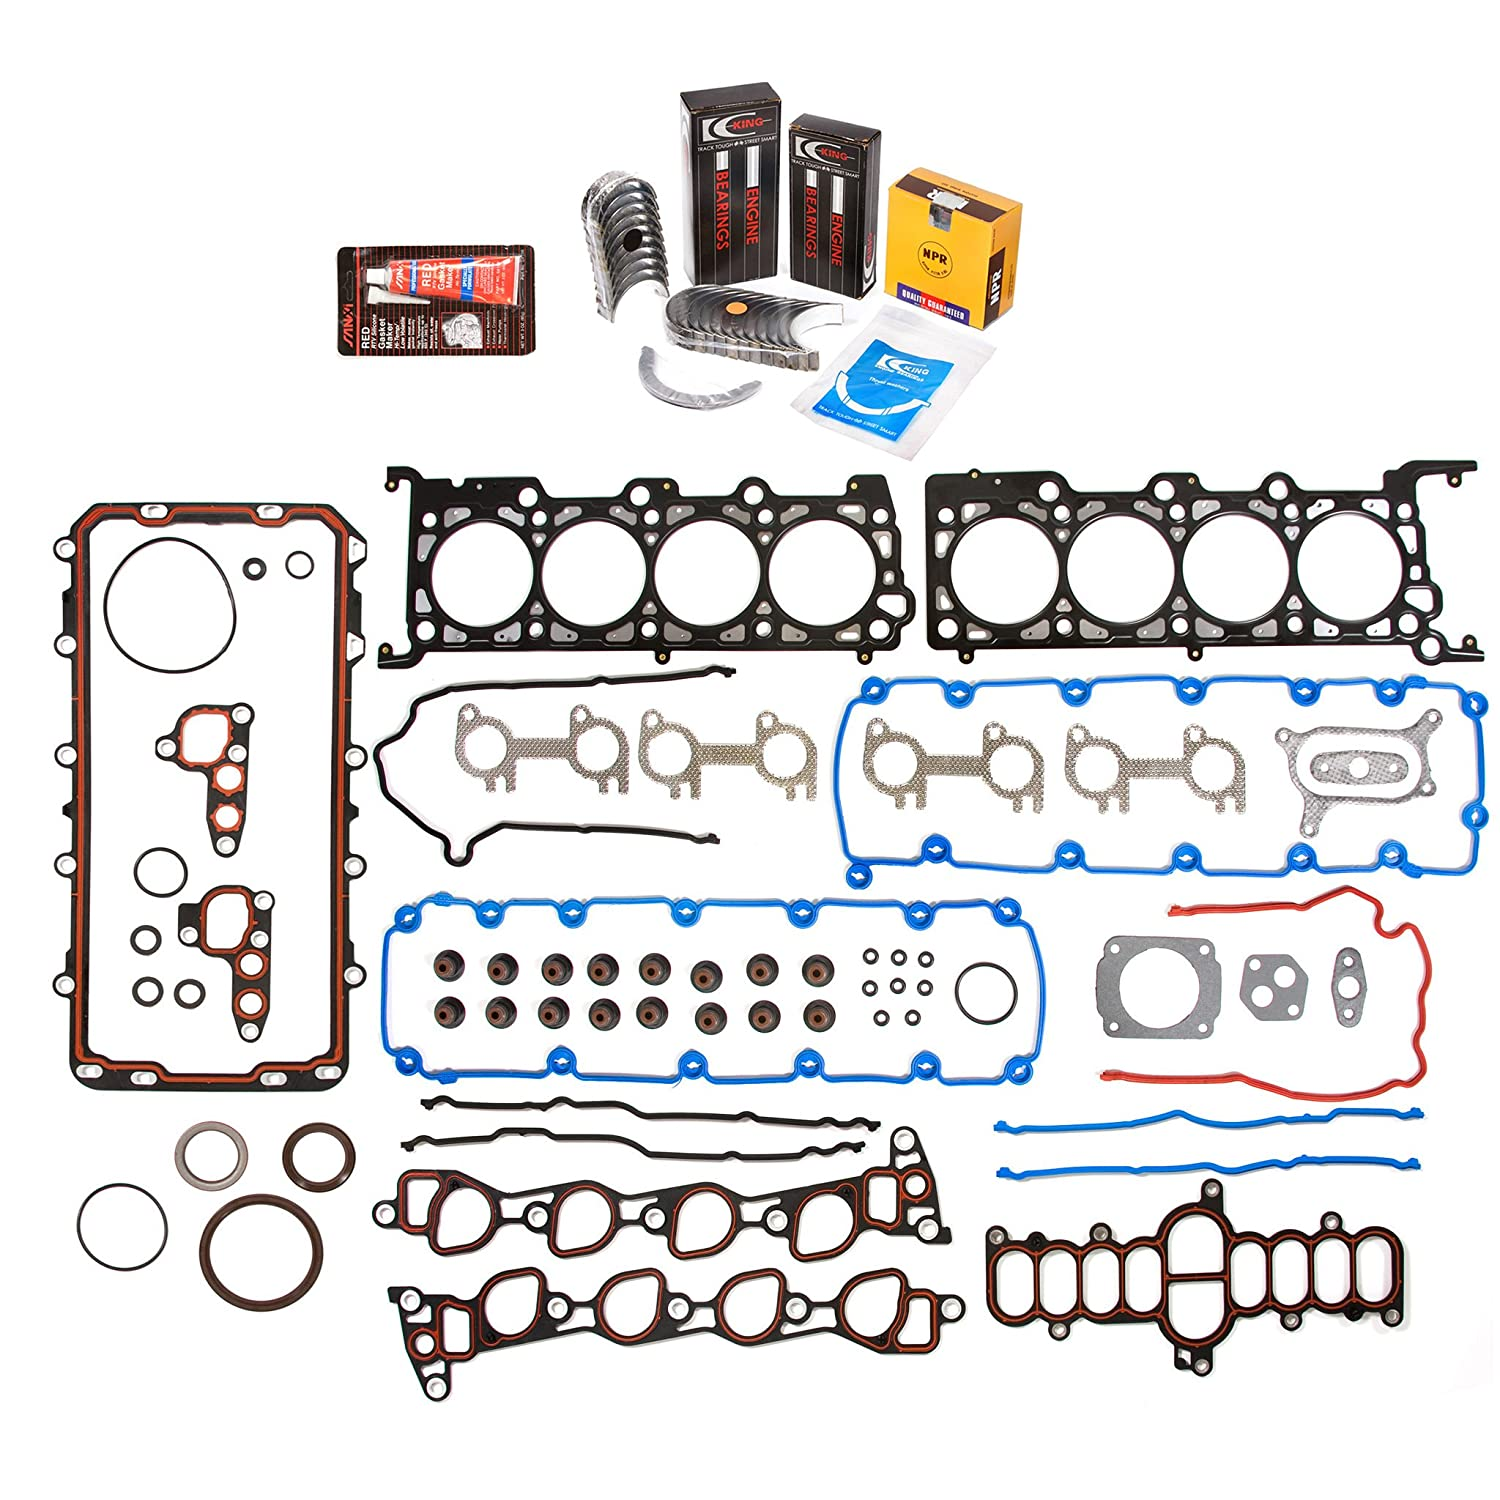 Evergreen Engine Rering Kit FSBRR8-21203\0\0\0 97-99 Ford E150 E250 F150 F250 4.6 SOHC WINDSOR Full Gasket Set, Standard Size Main Rod Bearings, Standard Size Piston Rings Evergreen Parts And Components